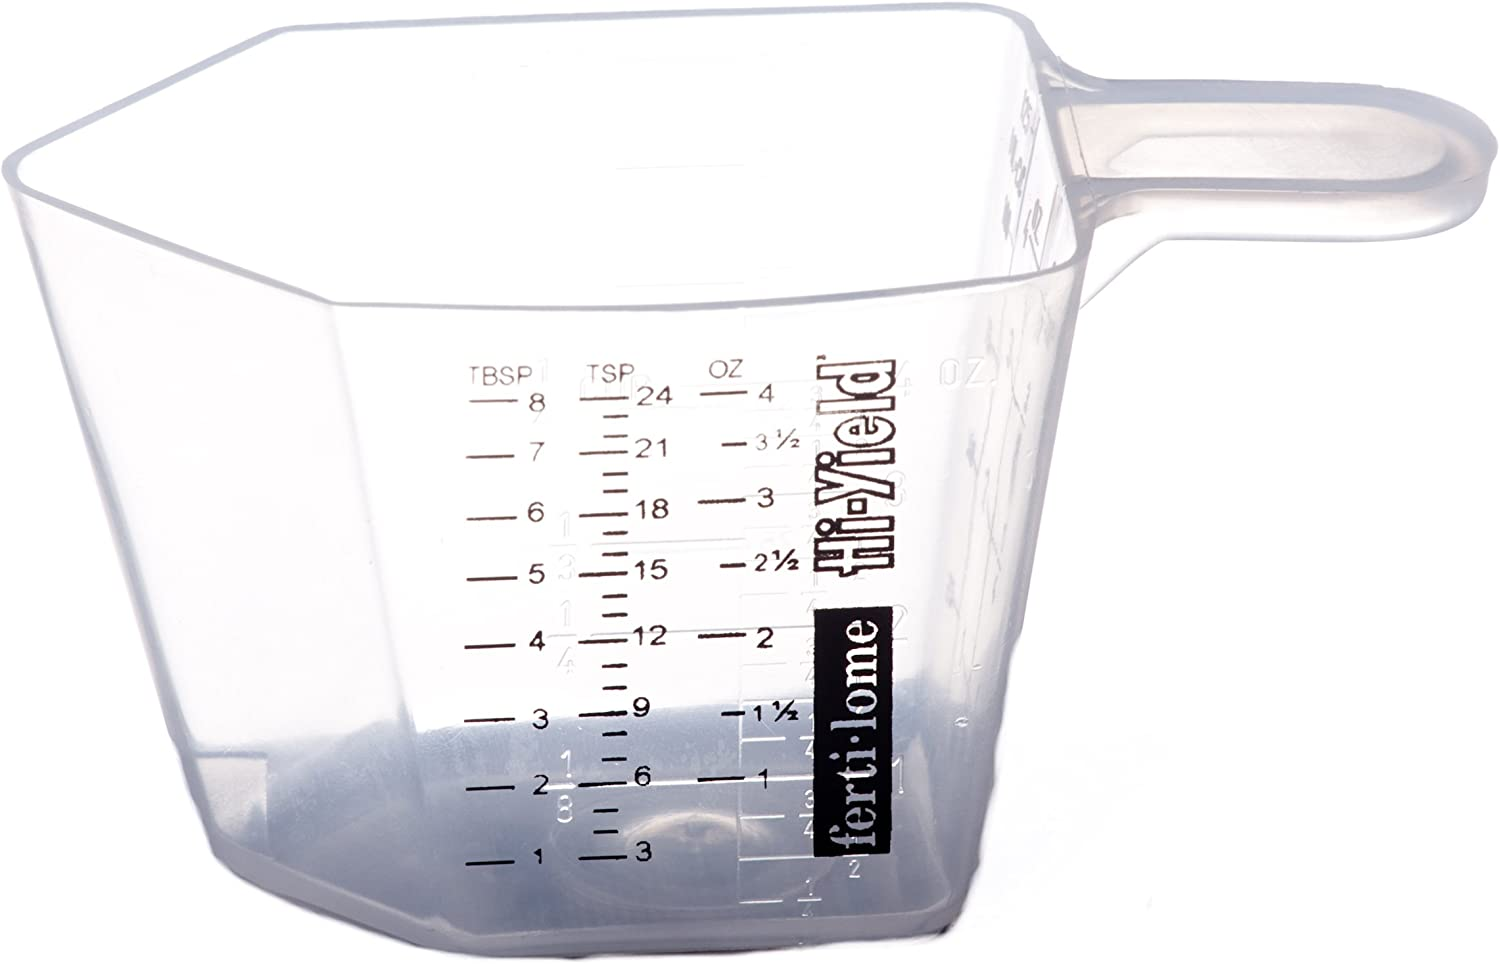 Vpg Fertilome 11008 4-Ounce Measuring Cup